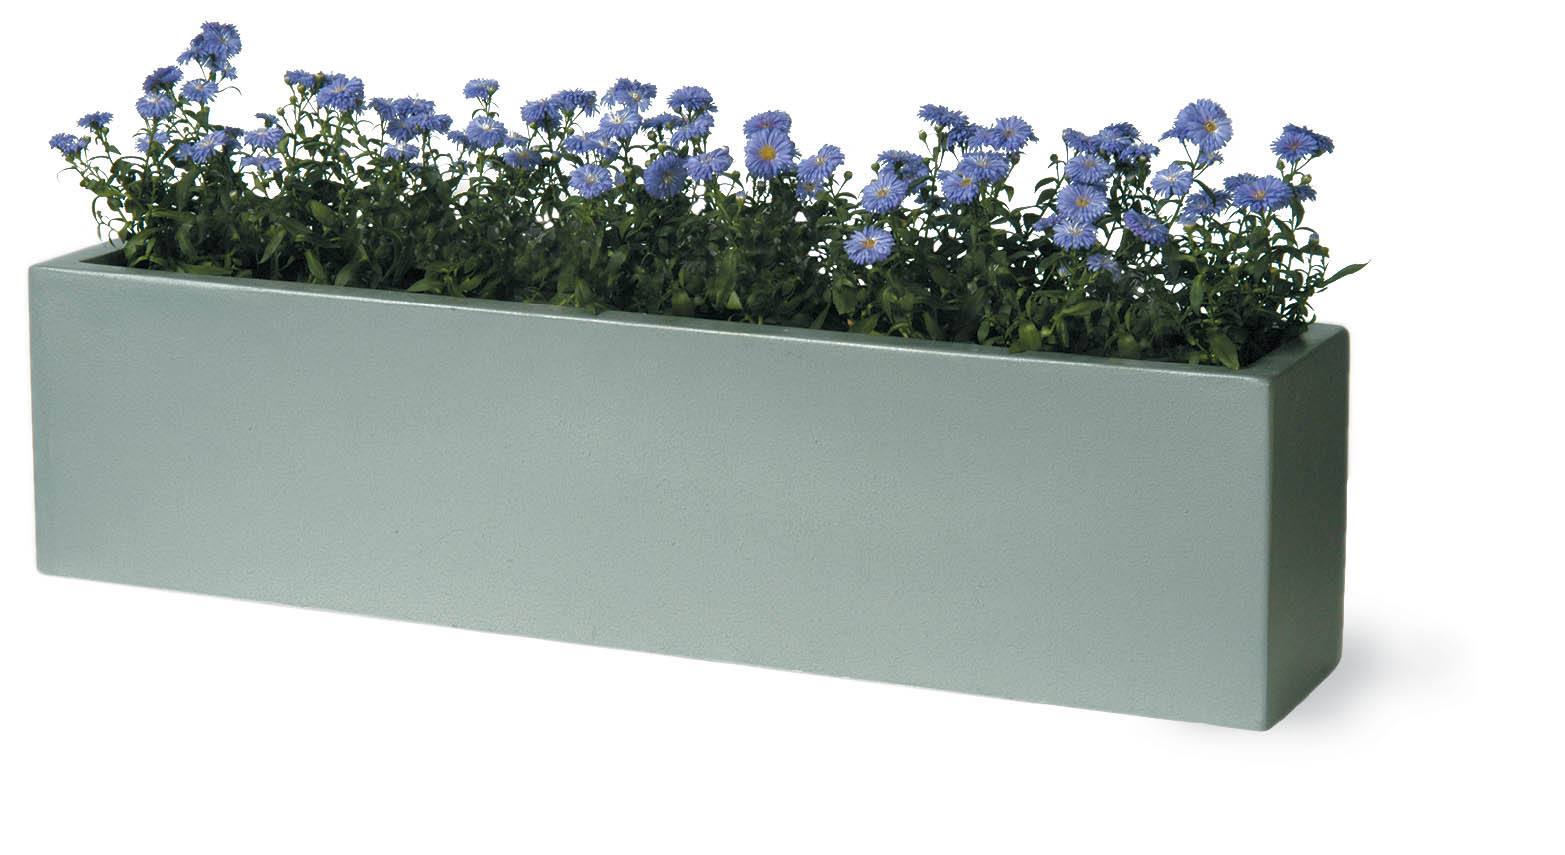 lightweight contemporary window box in 3 sizes